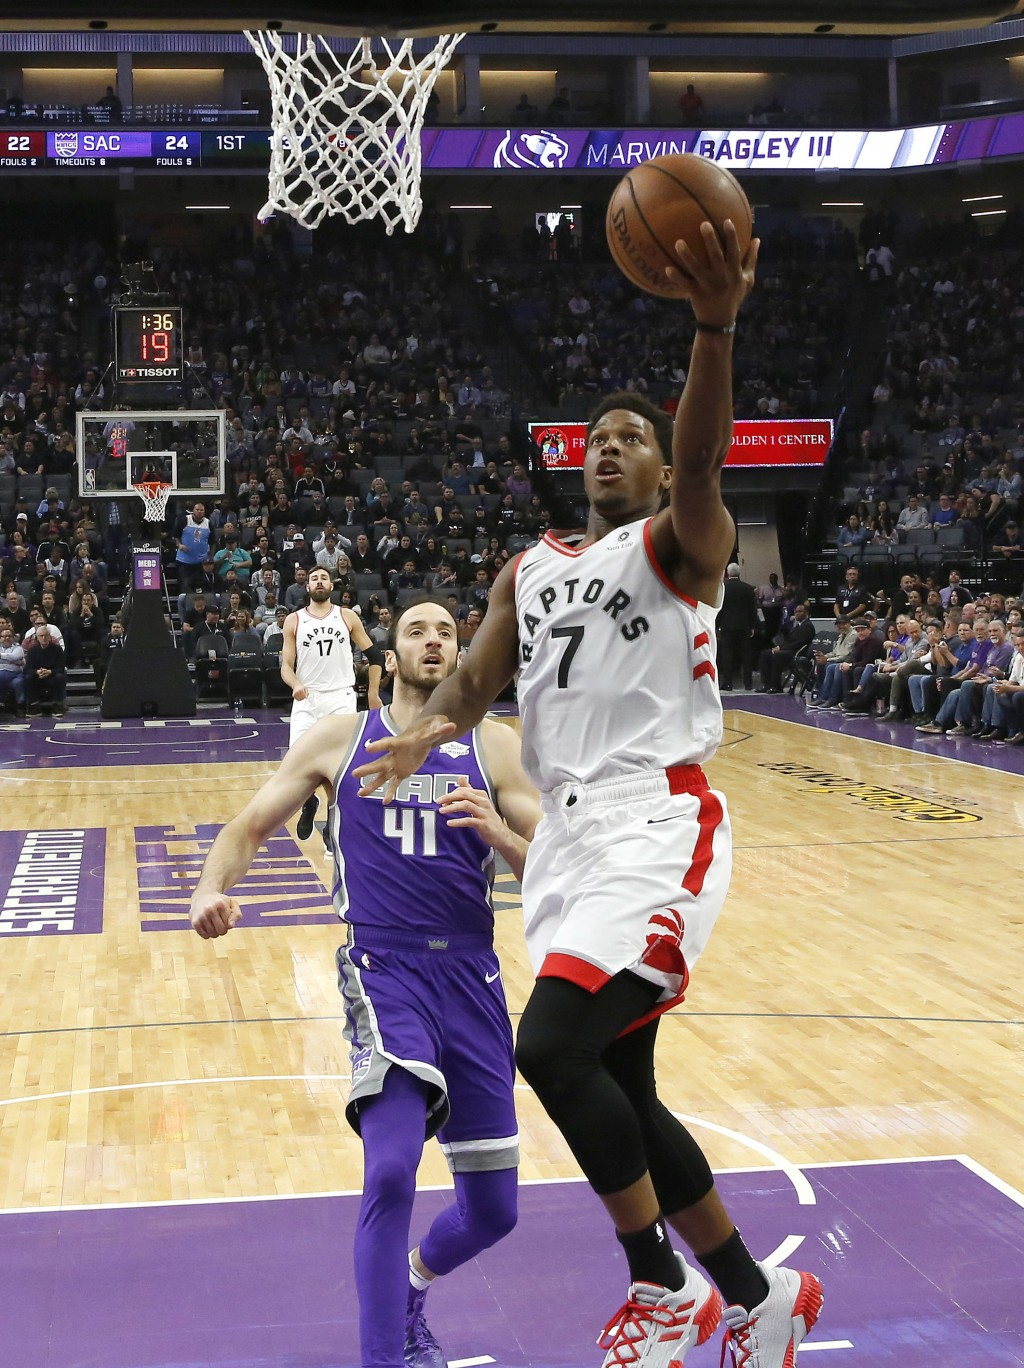 Toronto Raptors guard Kyle Lowry, right, goes to the basket as Sacramento Kings center Kosta Koufos, left, looks on during the first quarter of an NBA